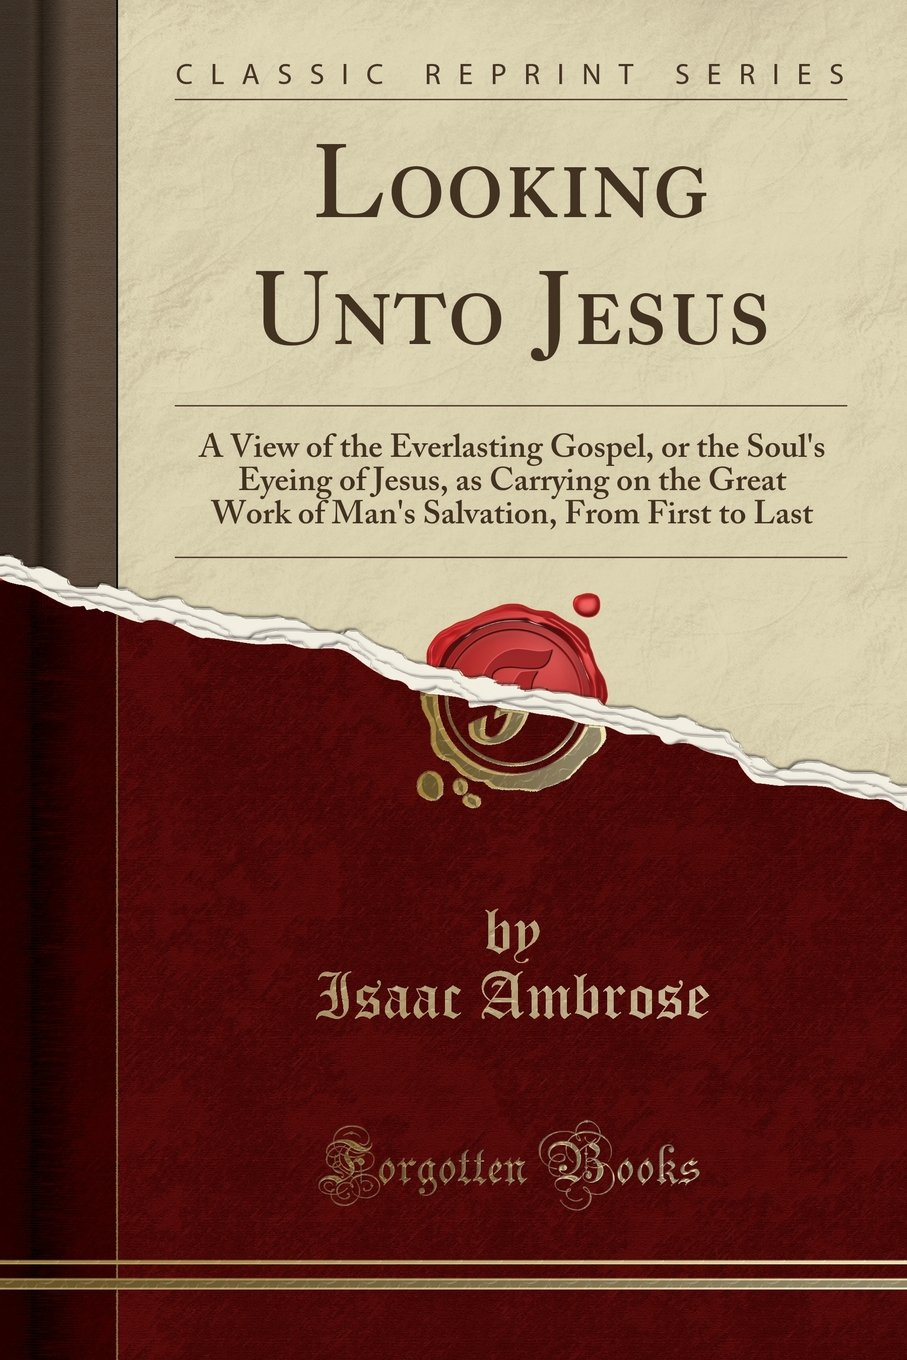 Read Online Looking Unto Jesus: A View of the Everlasting Gospel, or the Soul's Eyeing of Jesus, as Carrying on the Great Work of Man's Salvation, From First to Last (Classic Reprint) ebook